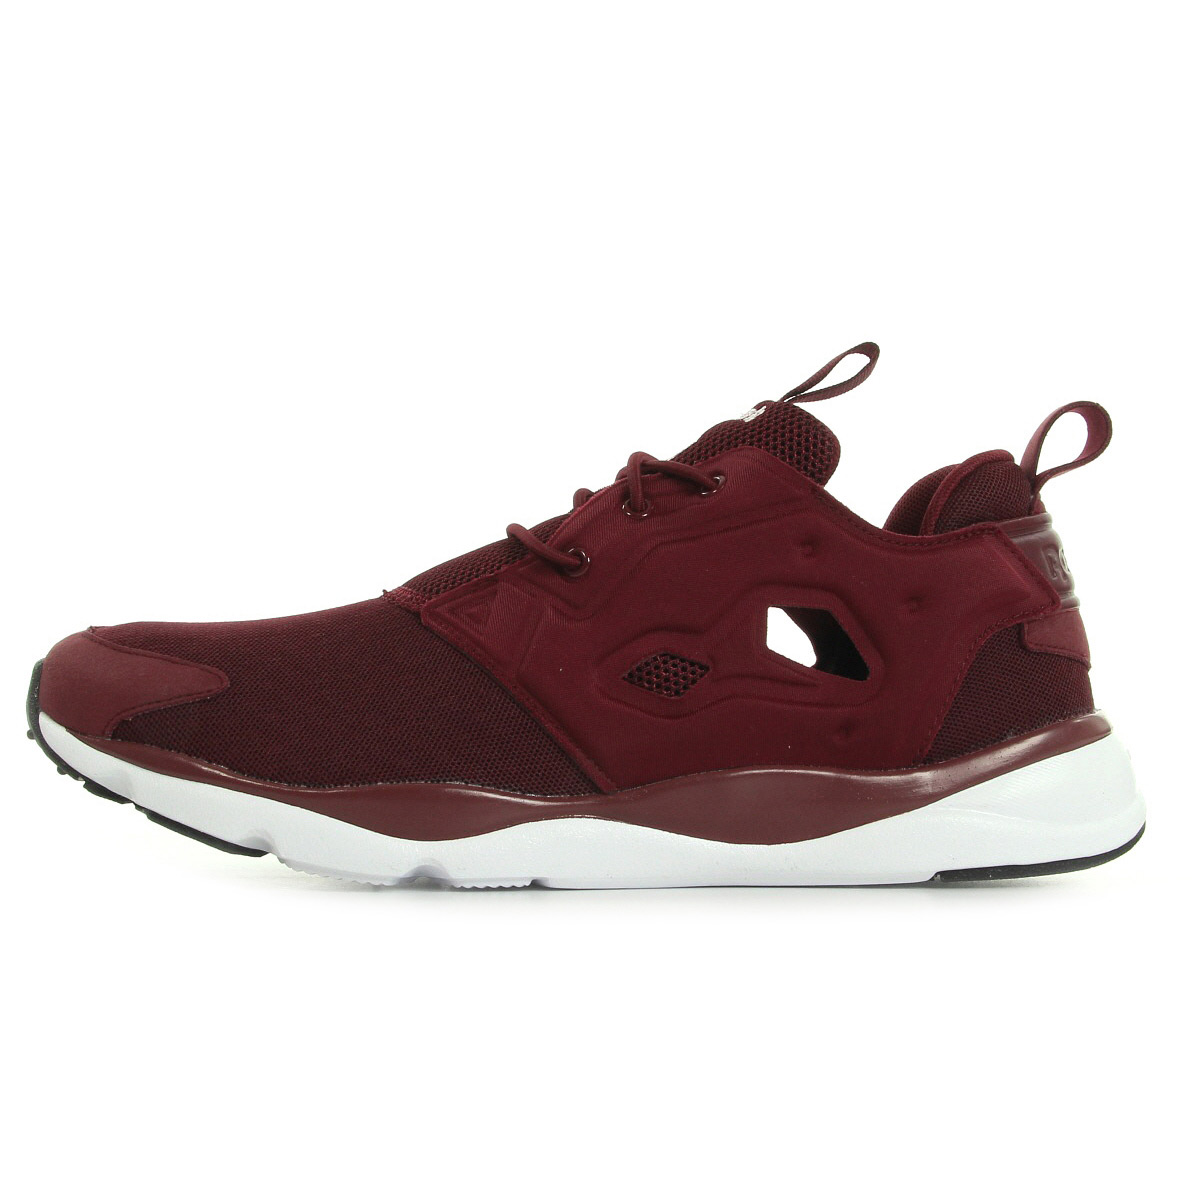 chaussures baskets reebok femme furylite taille bordeaux textile lacets ebay. Black Bedroom Furniture Sets. Home Design Ideas